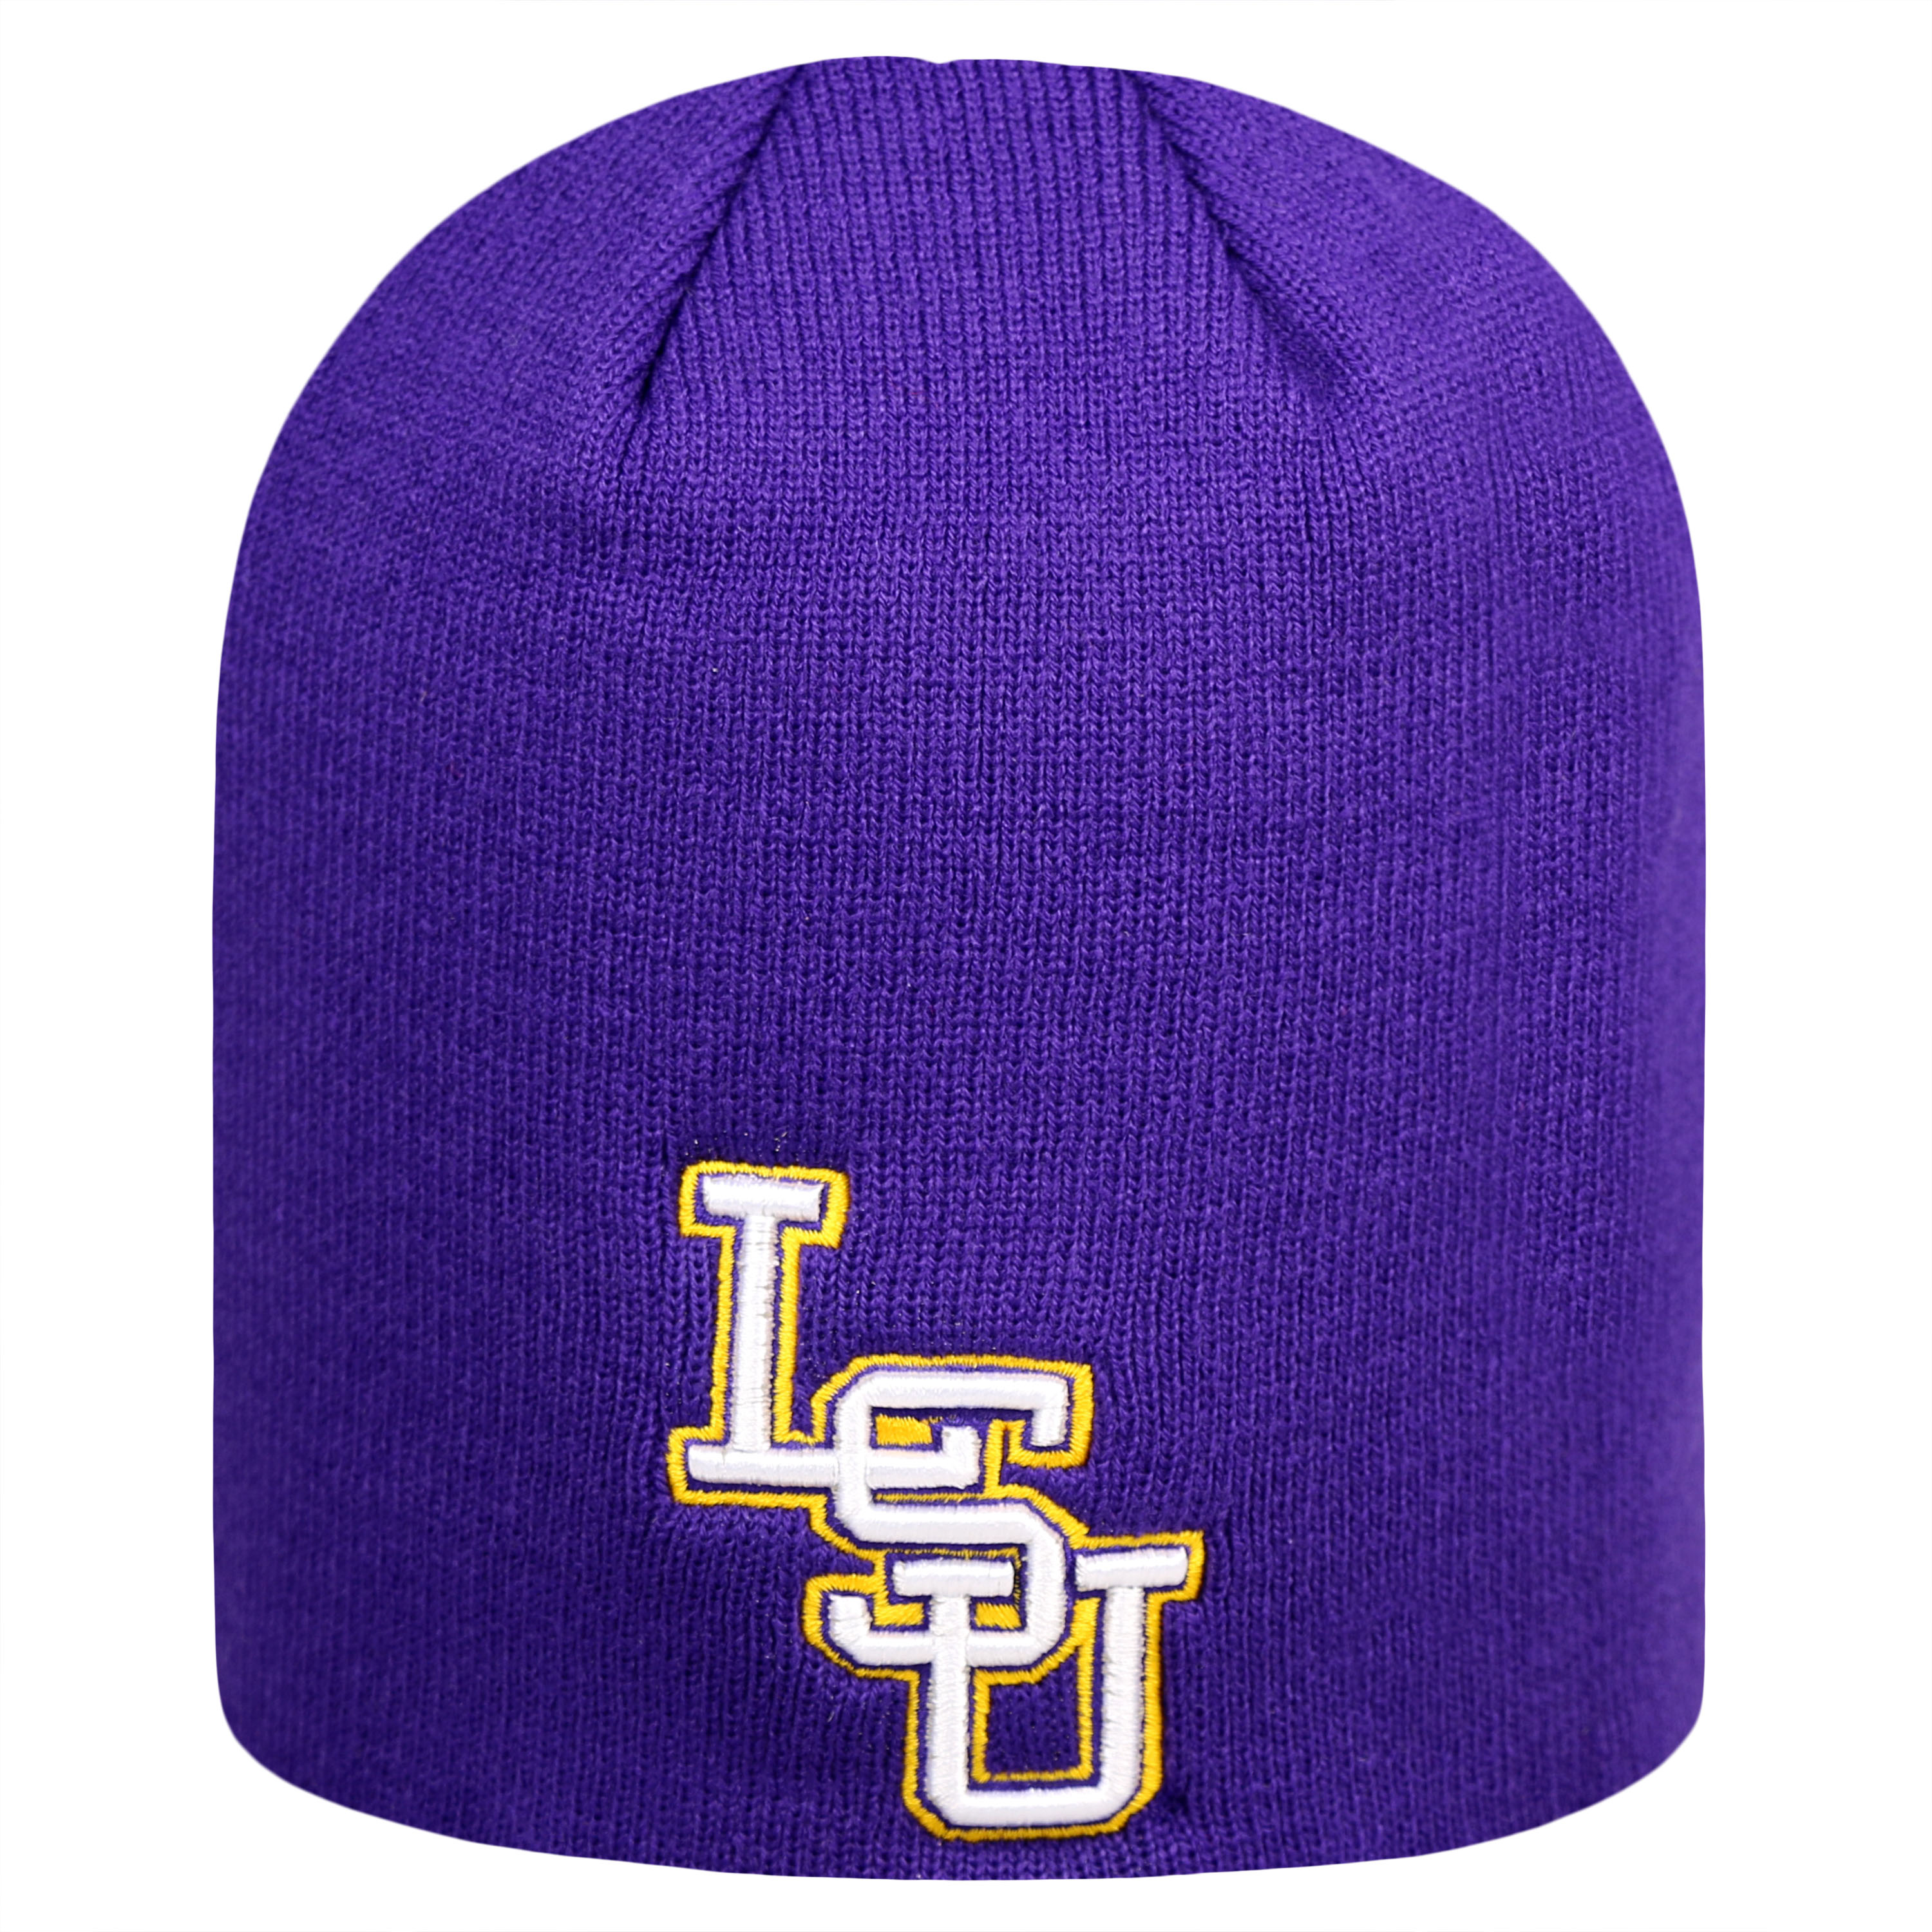 Lsu Tigers Official NCAA Uncuffed Knit Classic Beanie Stocking Stretch Sock Hat Cap by Top of the World 924595